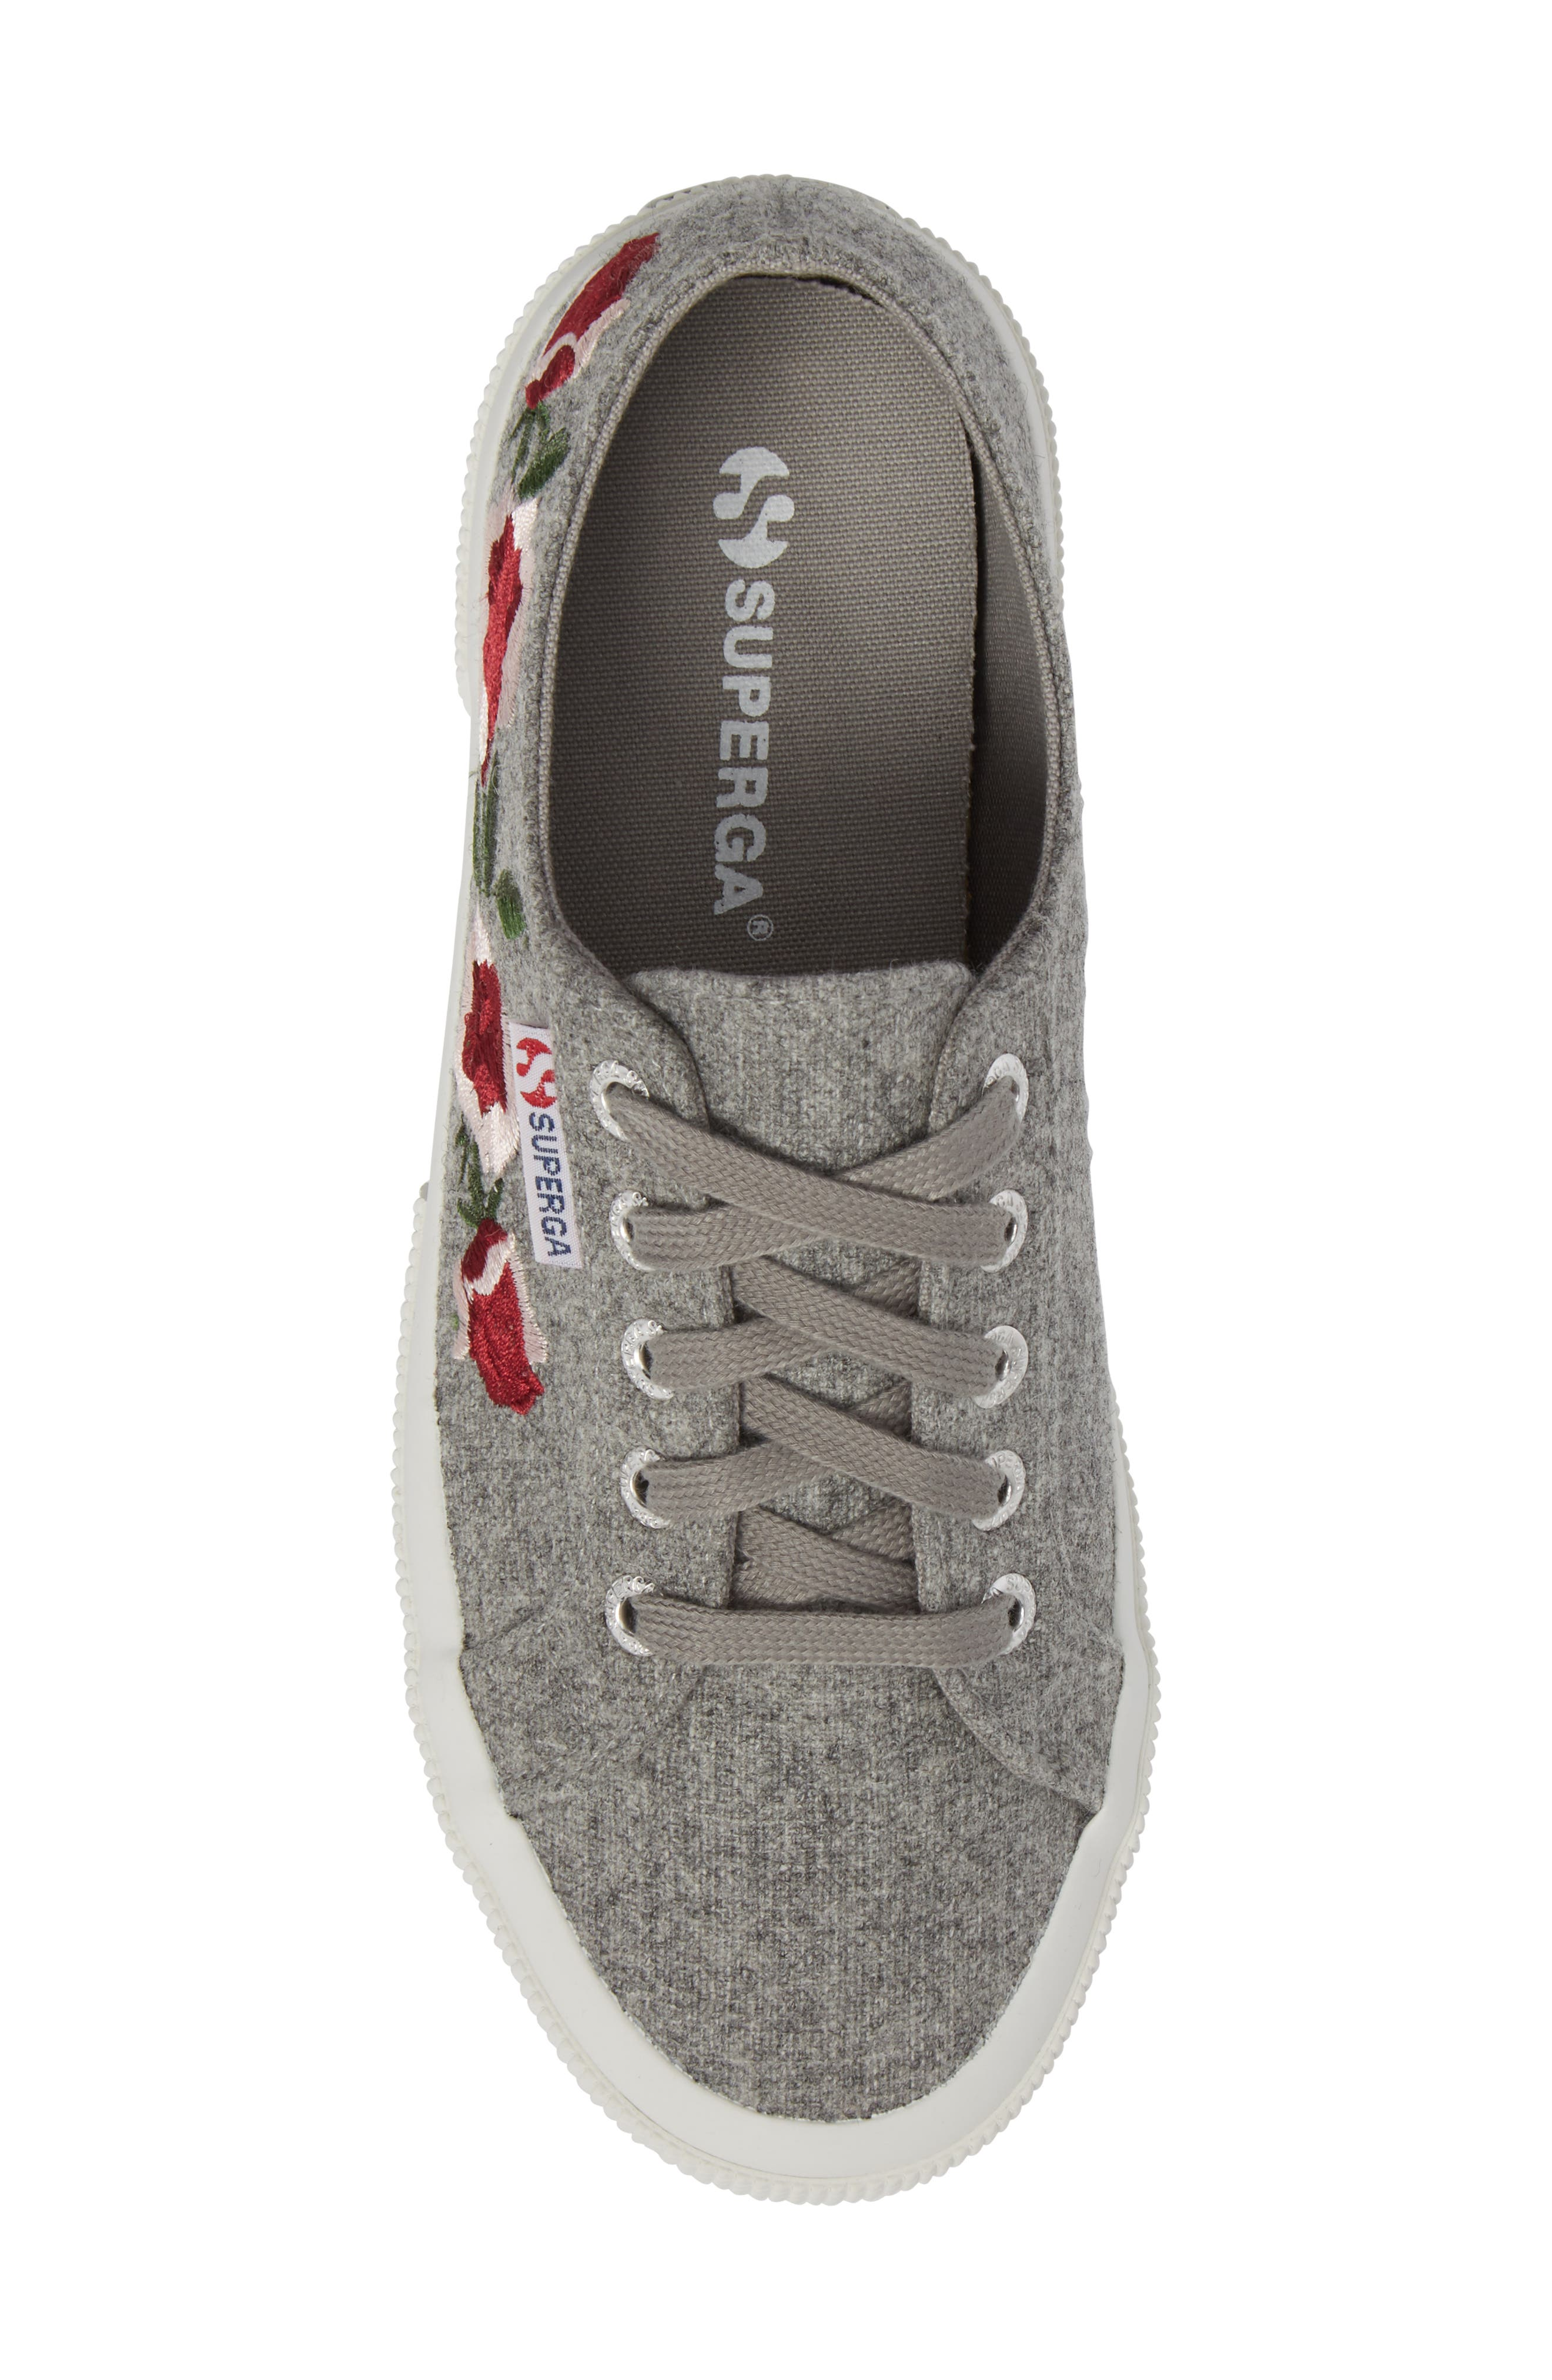 2750 Embroidered Sneaker,                             Alternate thumbnail 5, color,                             022